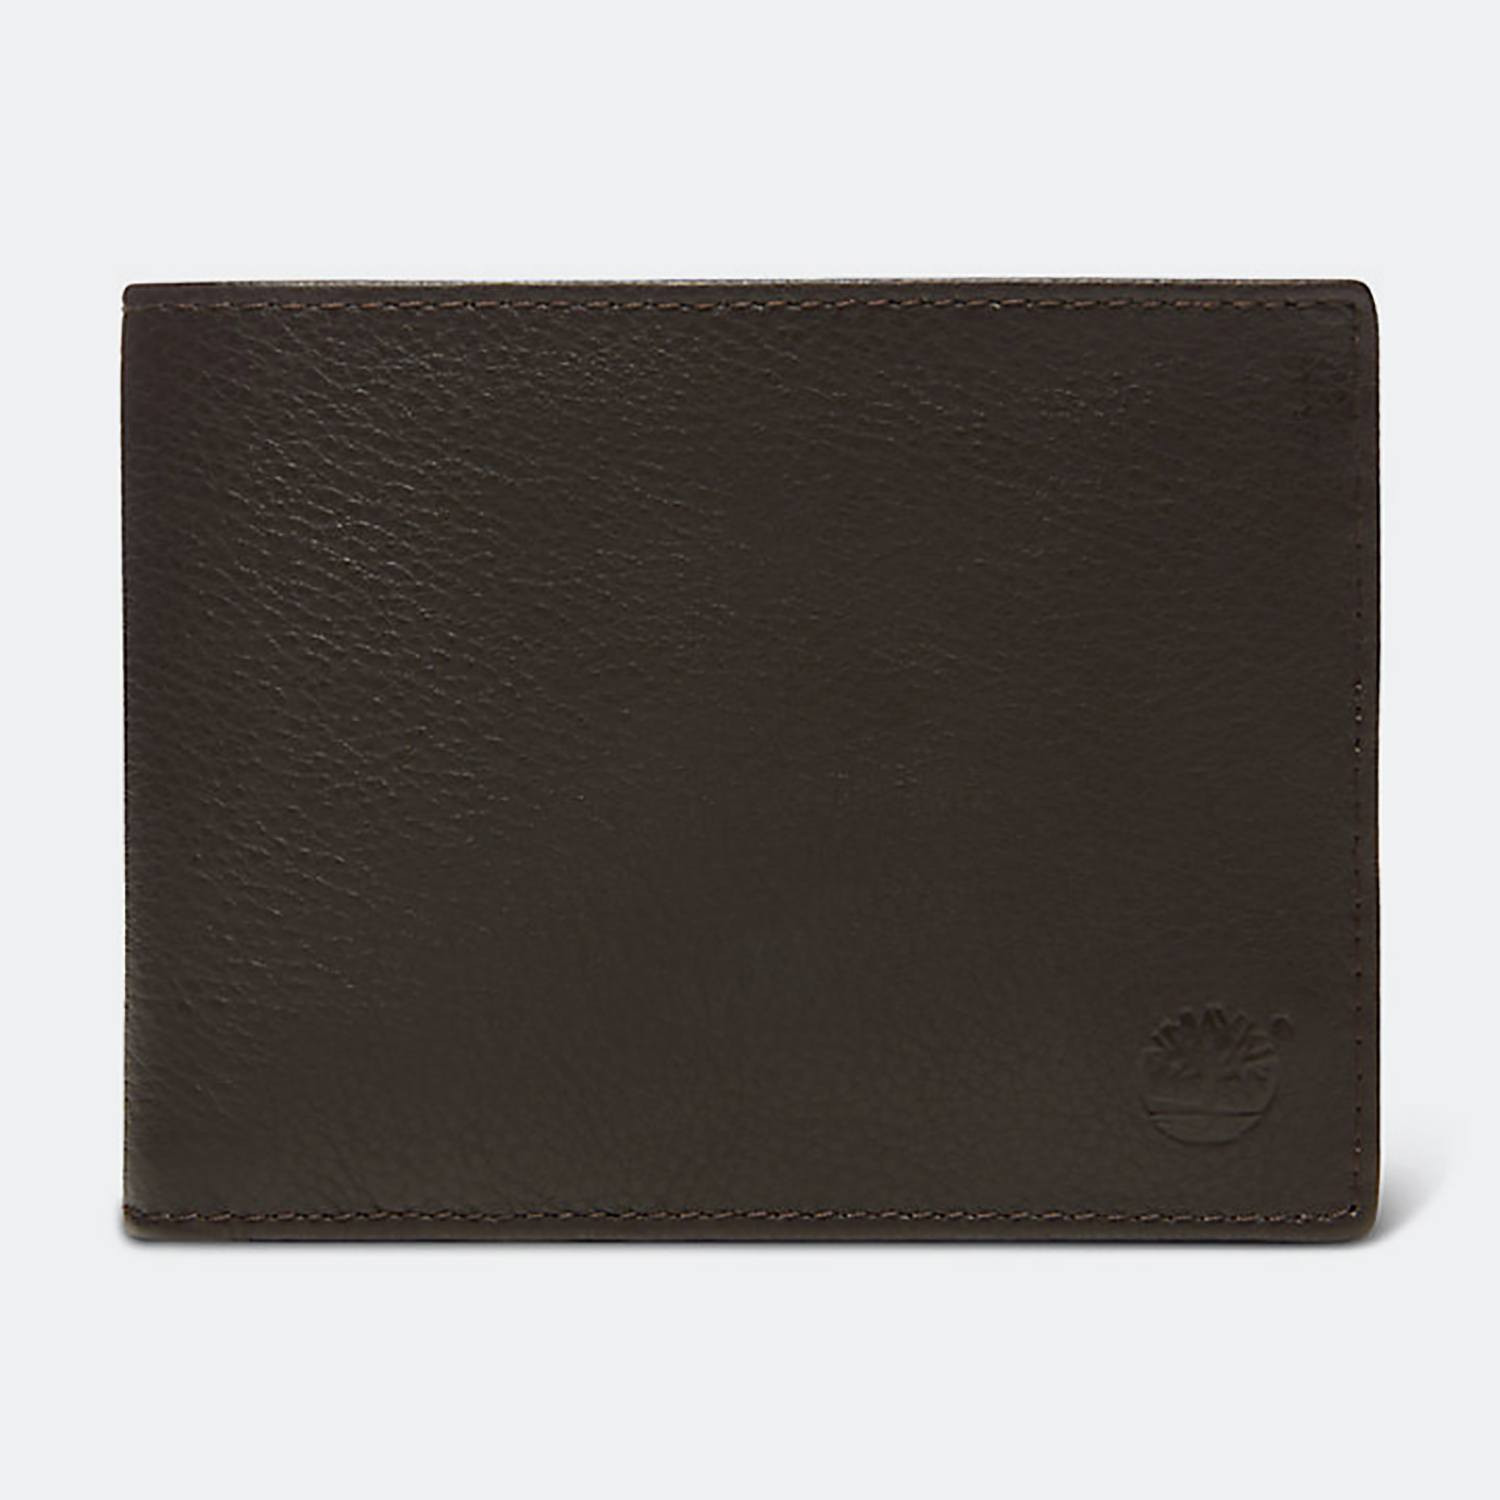 Timberland LG Wallet & Coin Pouch (9000032202_1934)